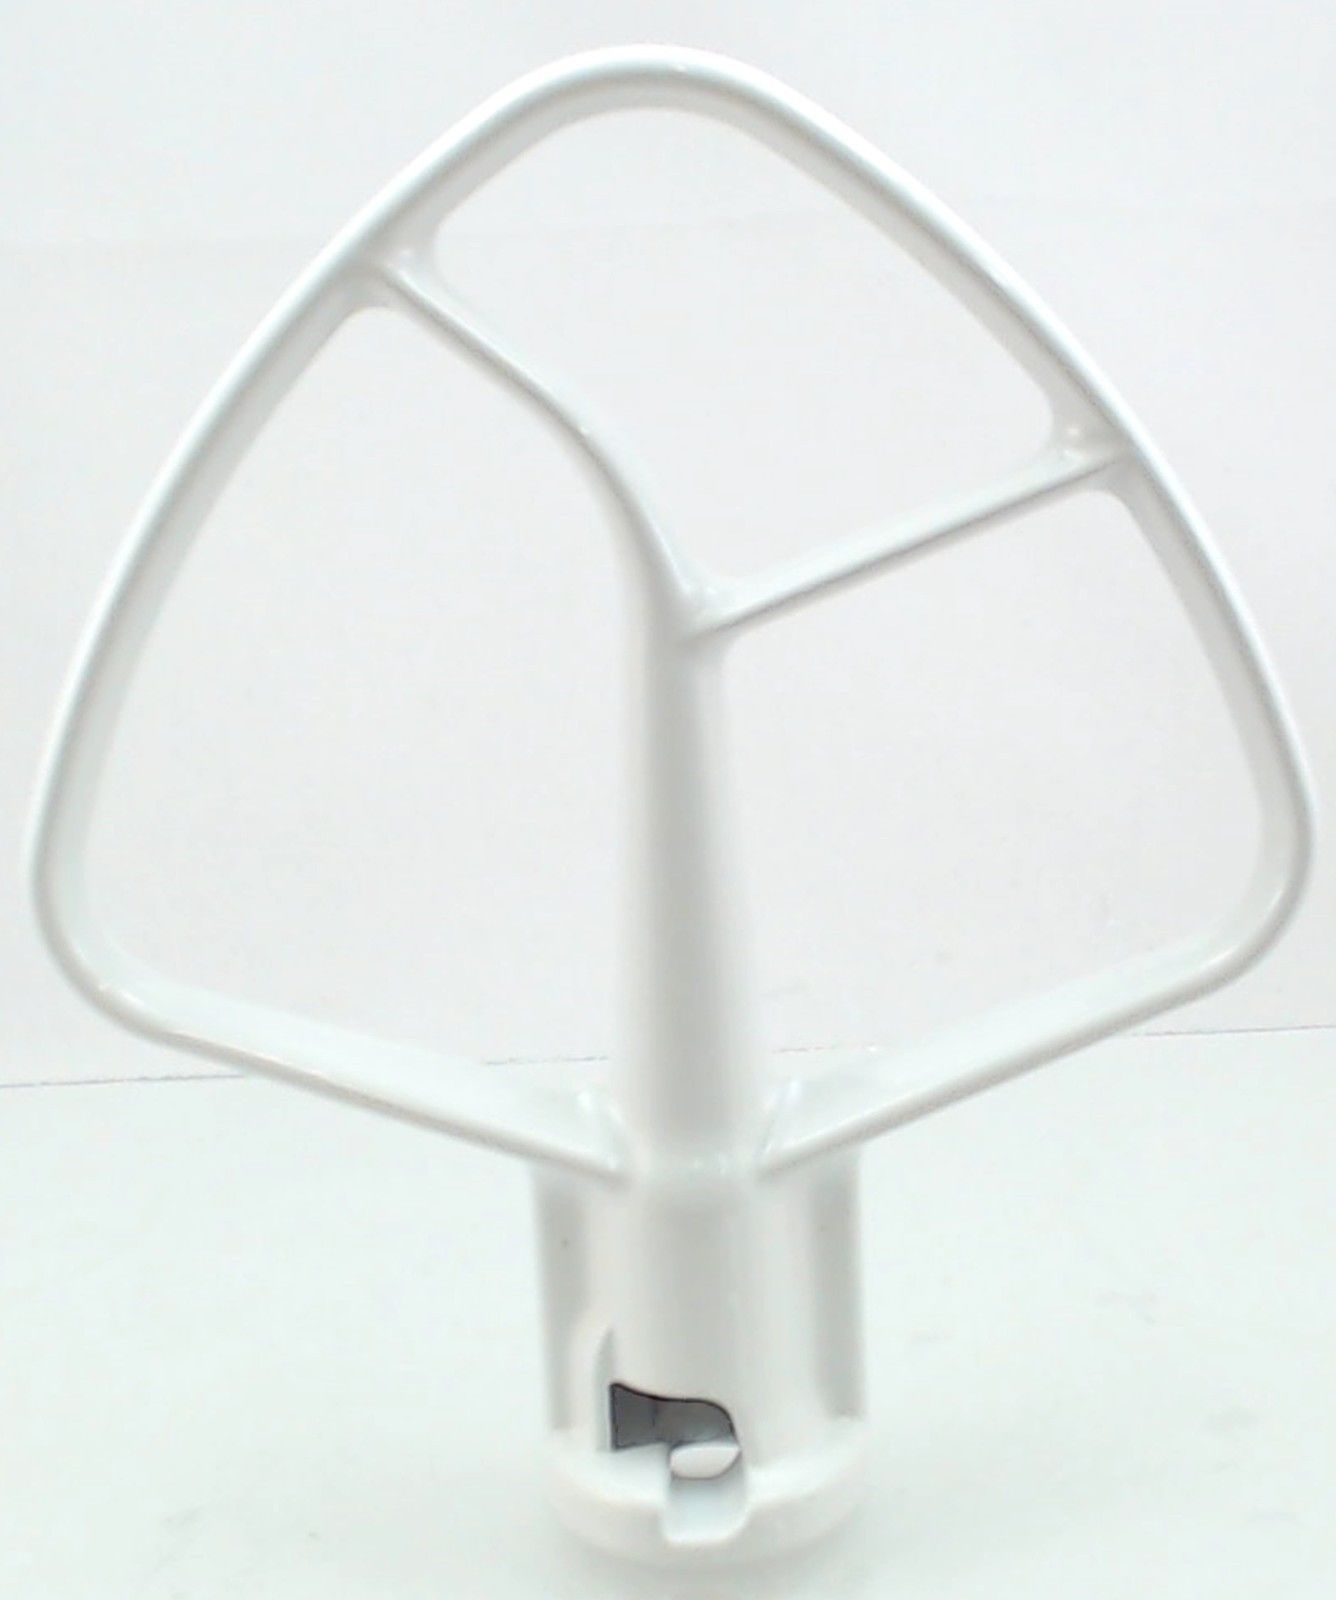 Stand Mixer, 4.5 QT Flat Coated Beater for KitchenAid K45B, PS987906 SAW10672617